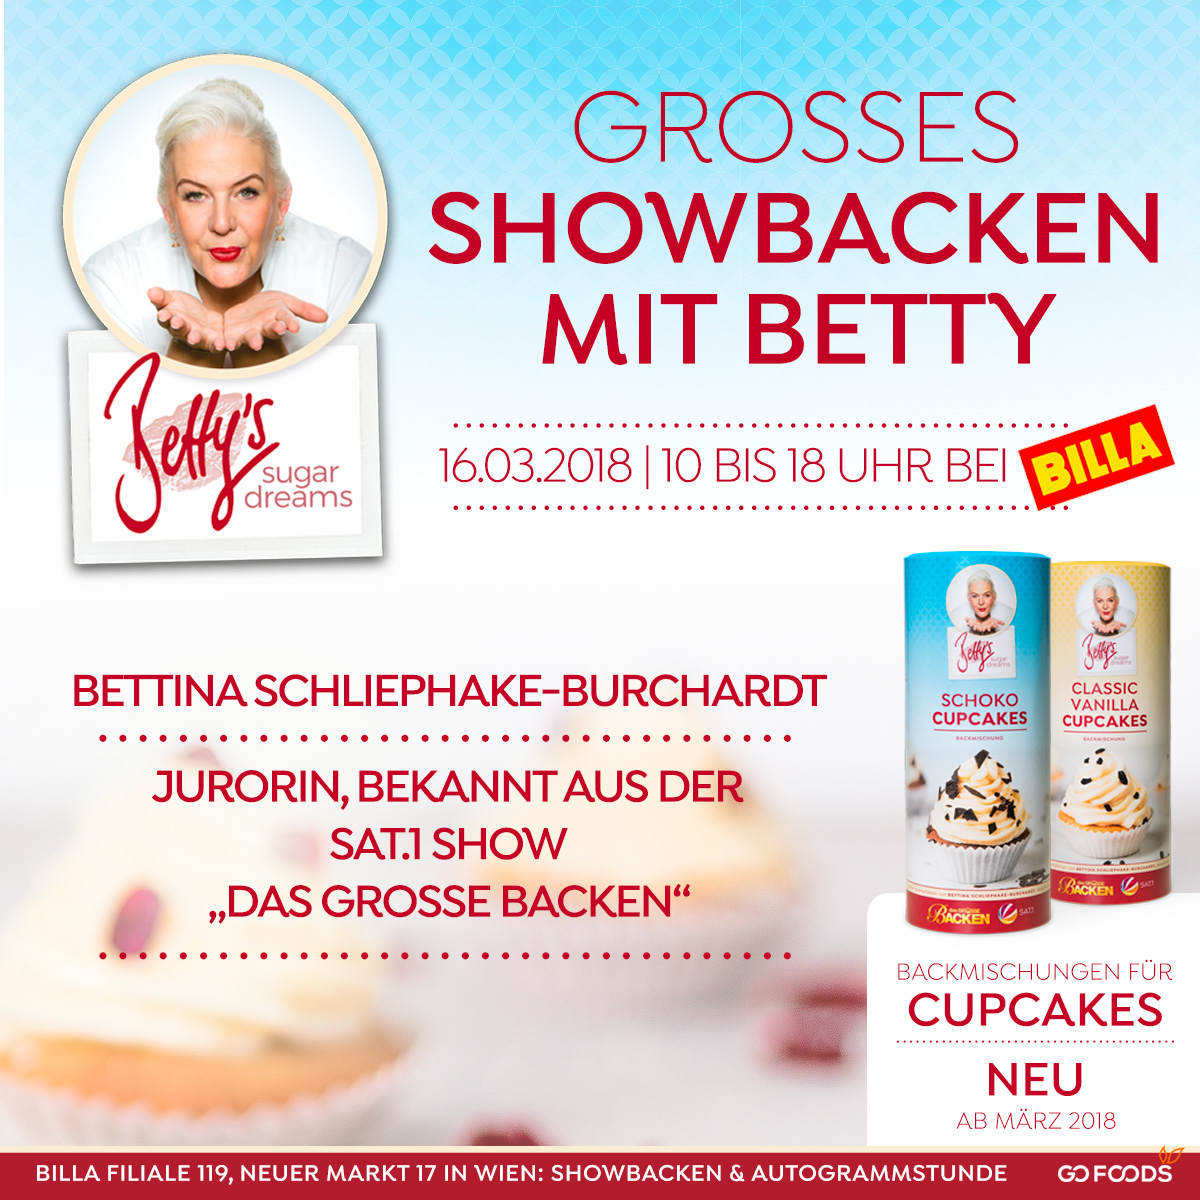 Das grosse Showbacken mit Betty